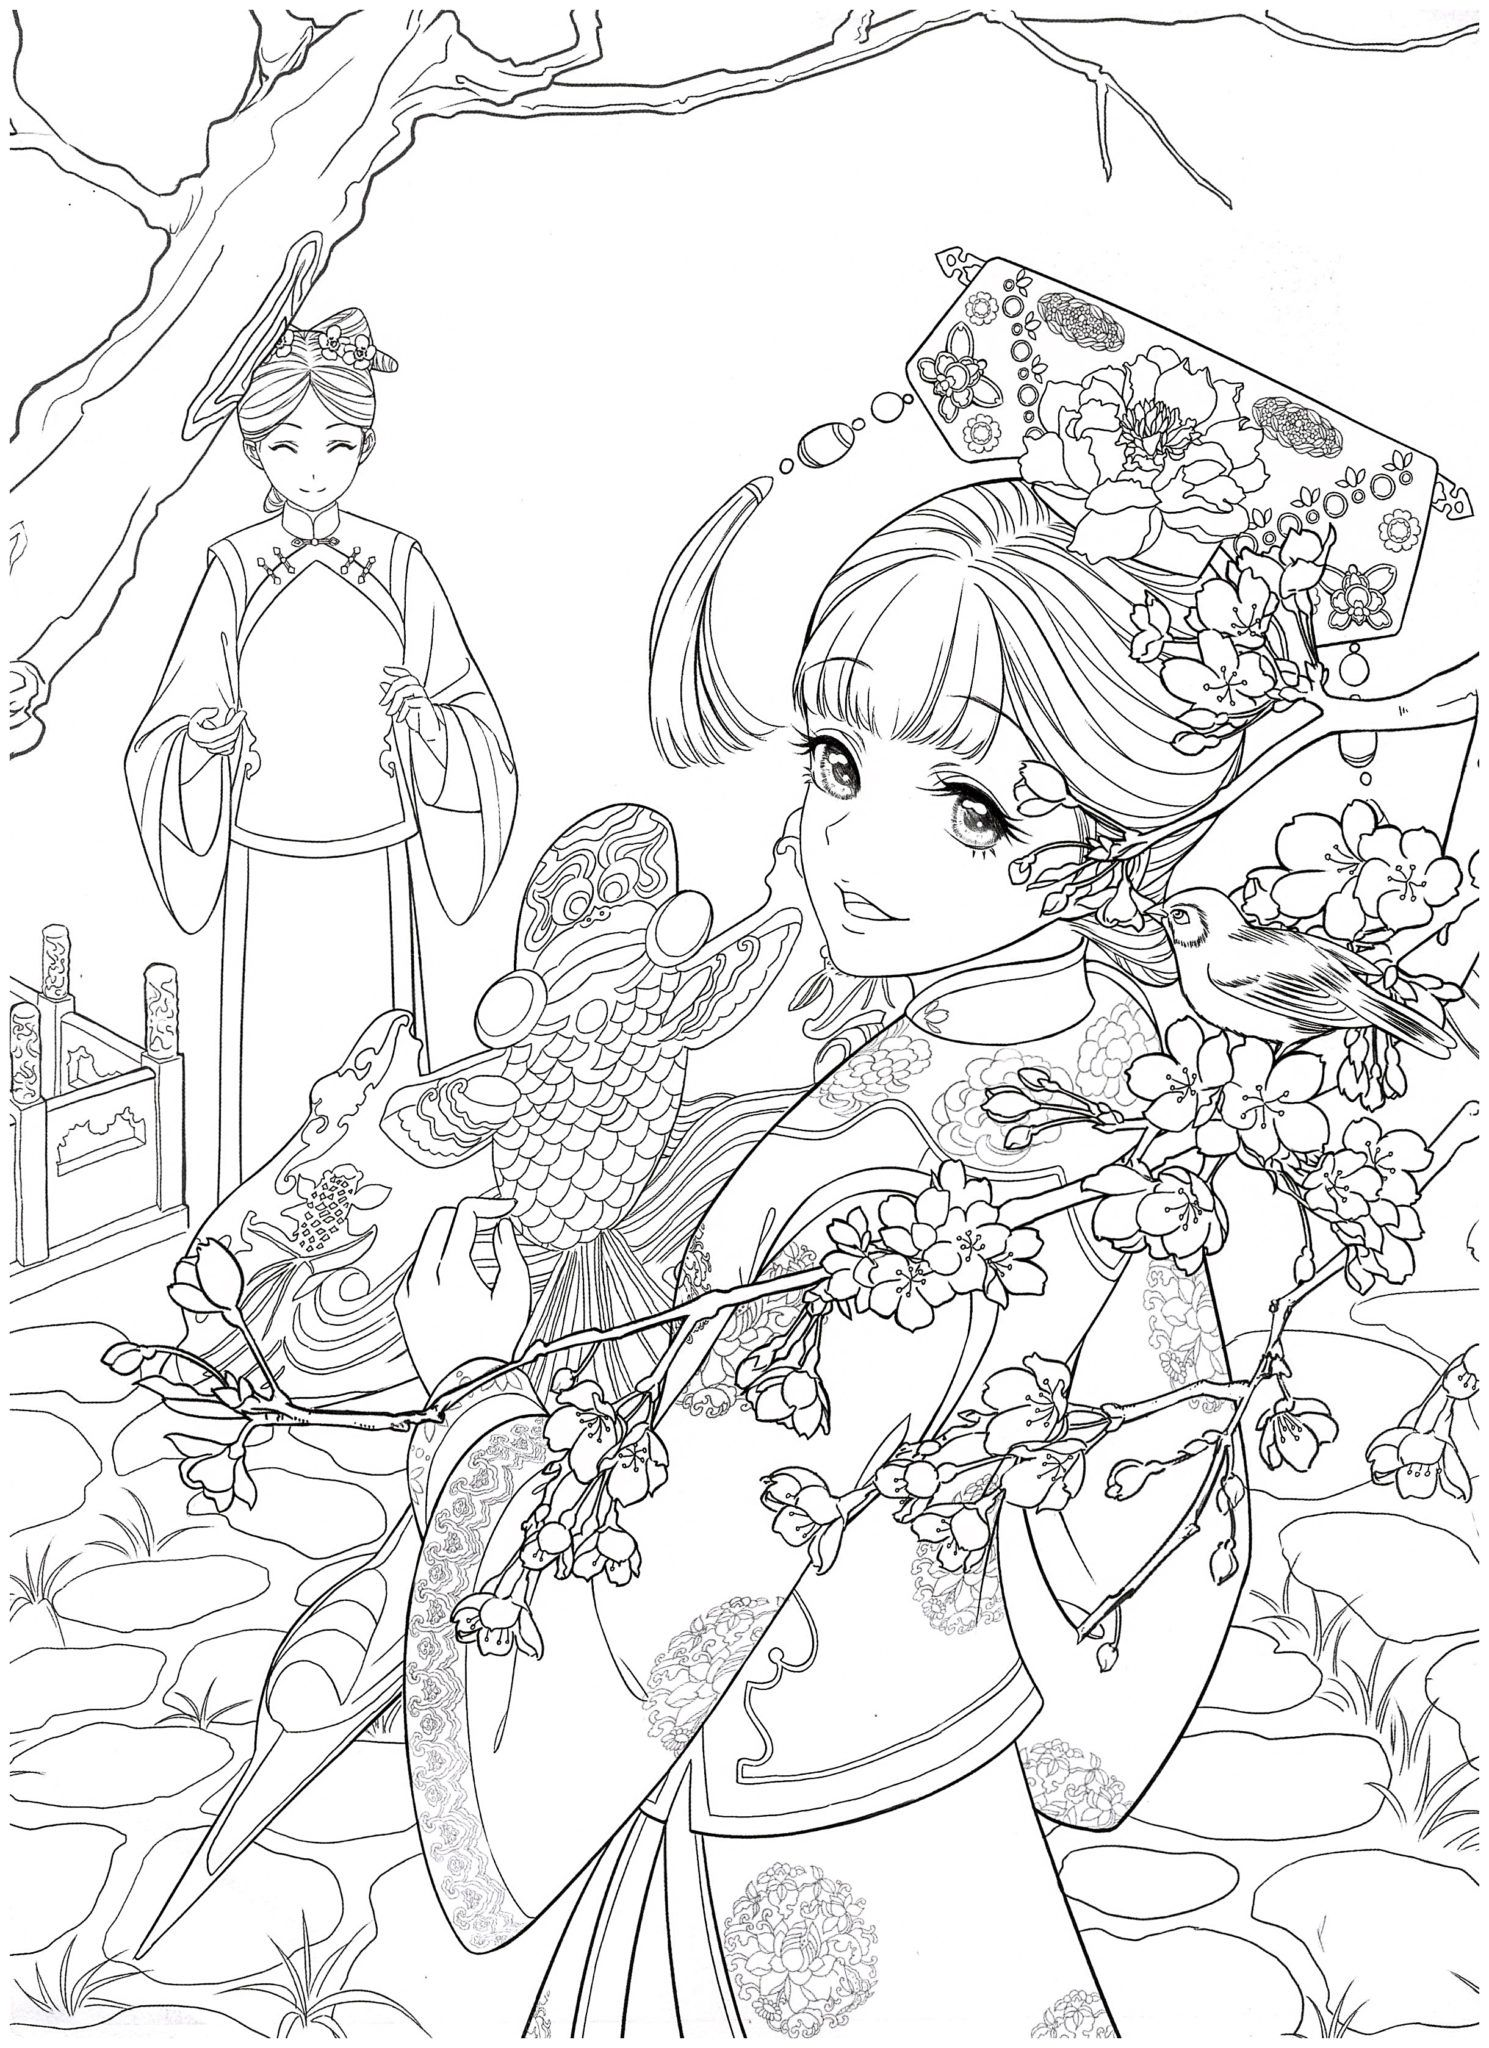 Chinese portrait coloring ebook vol 12 kayliebooks in